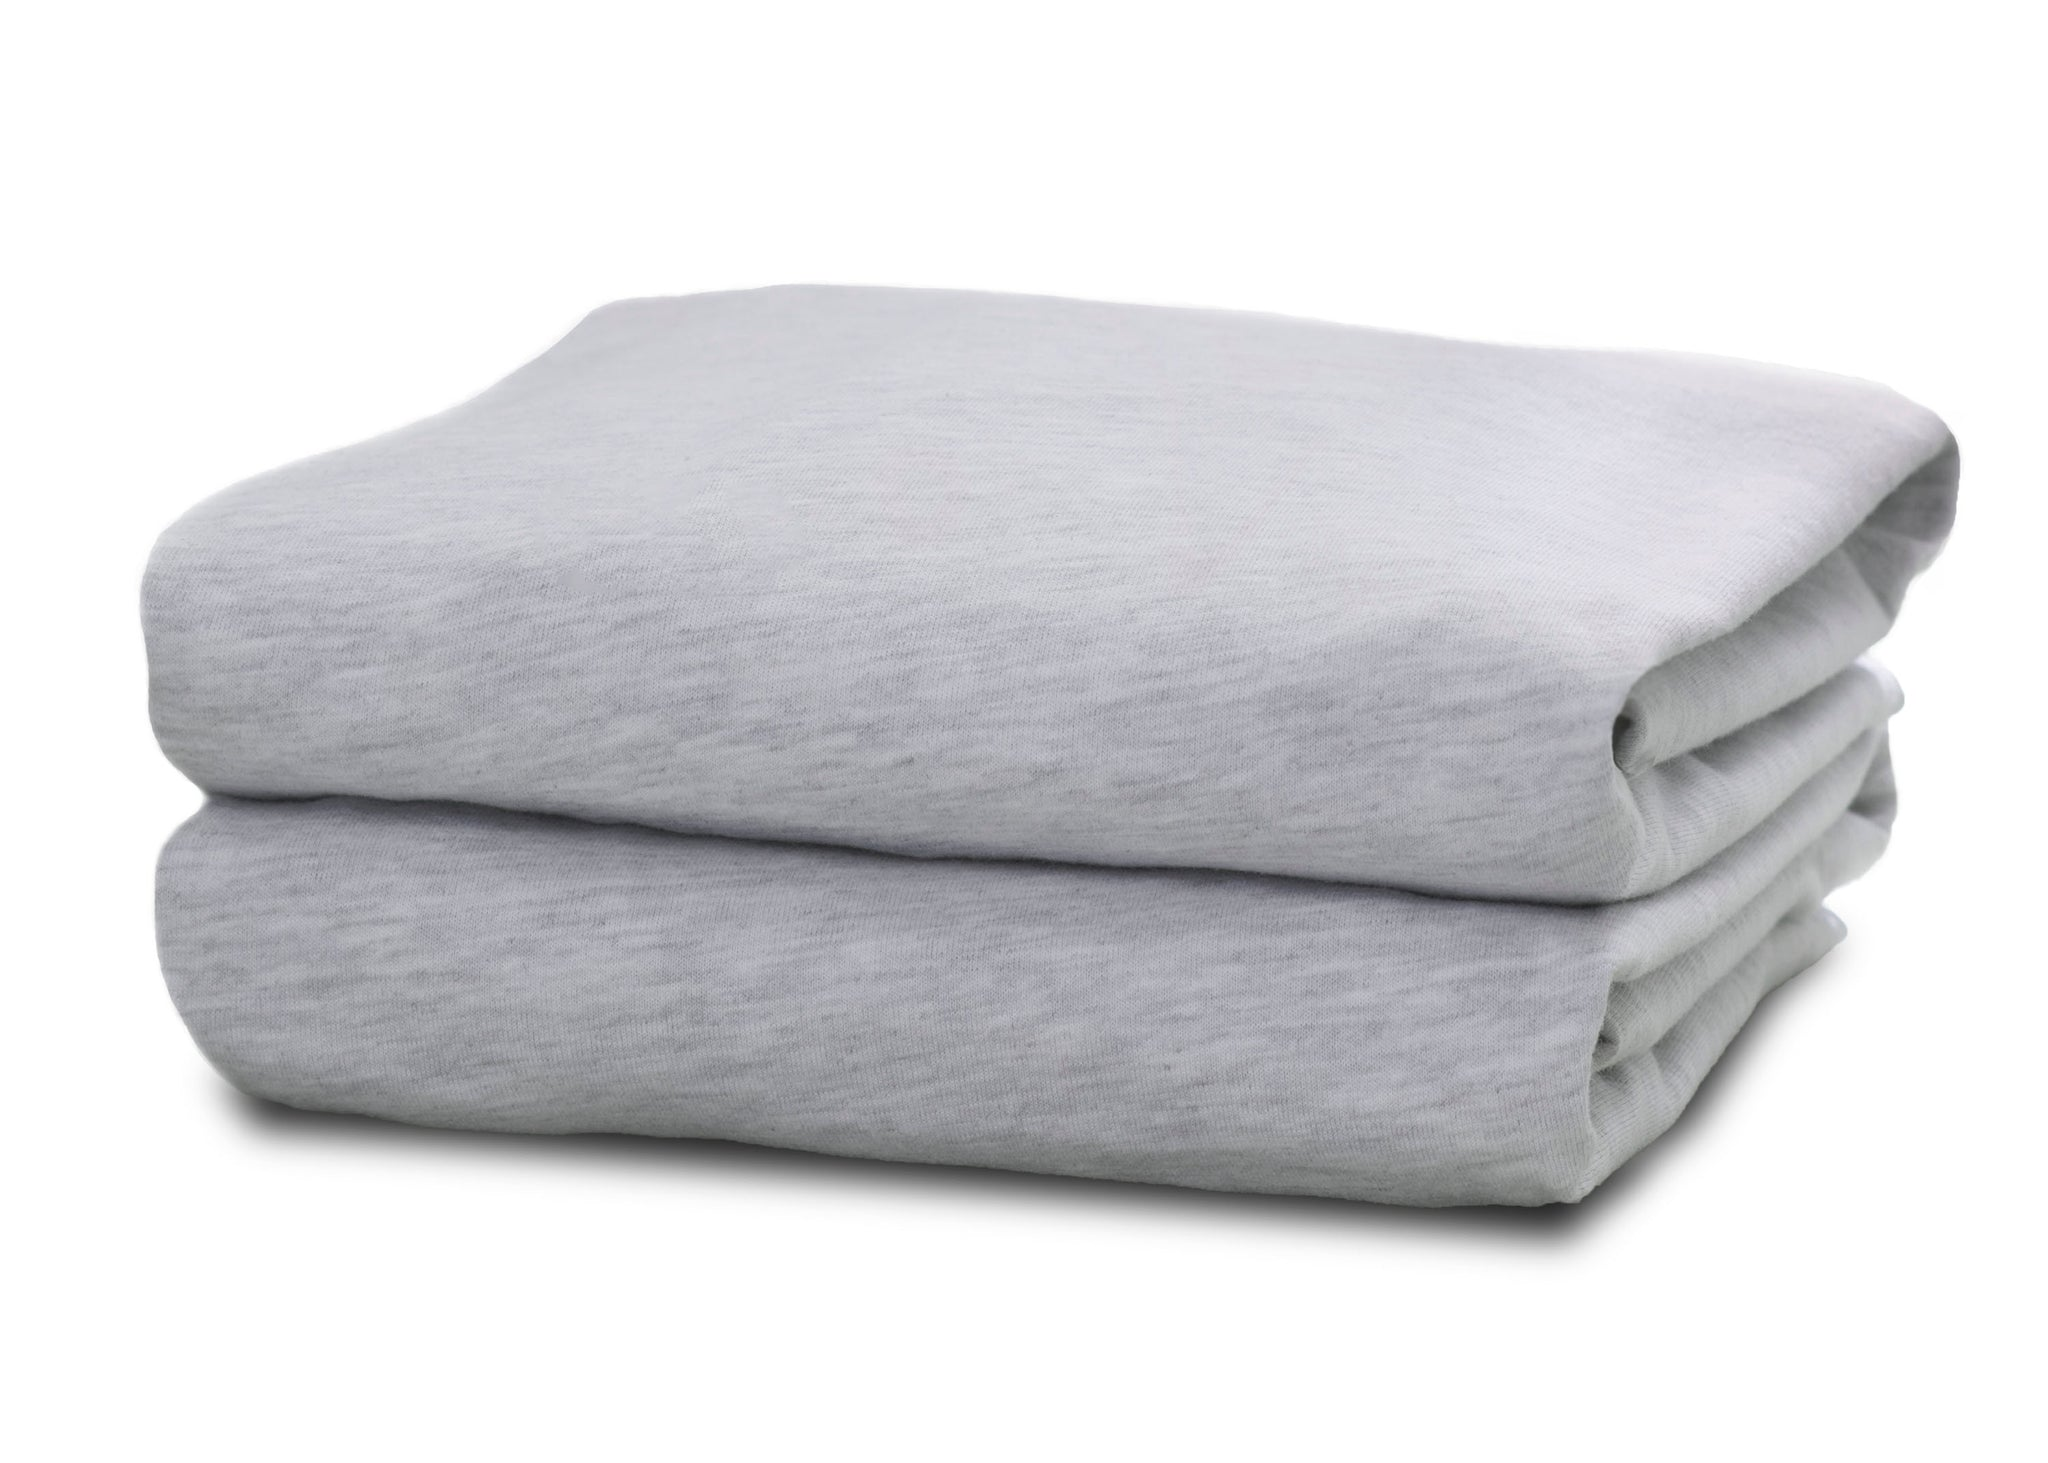 Delta Children Heather Grey (053) Fitted Bassinet Sheet Set – 2 Pack Folded View